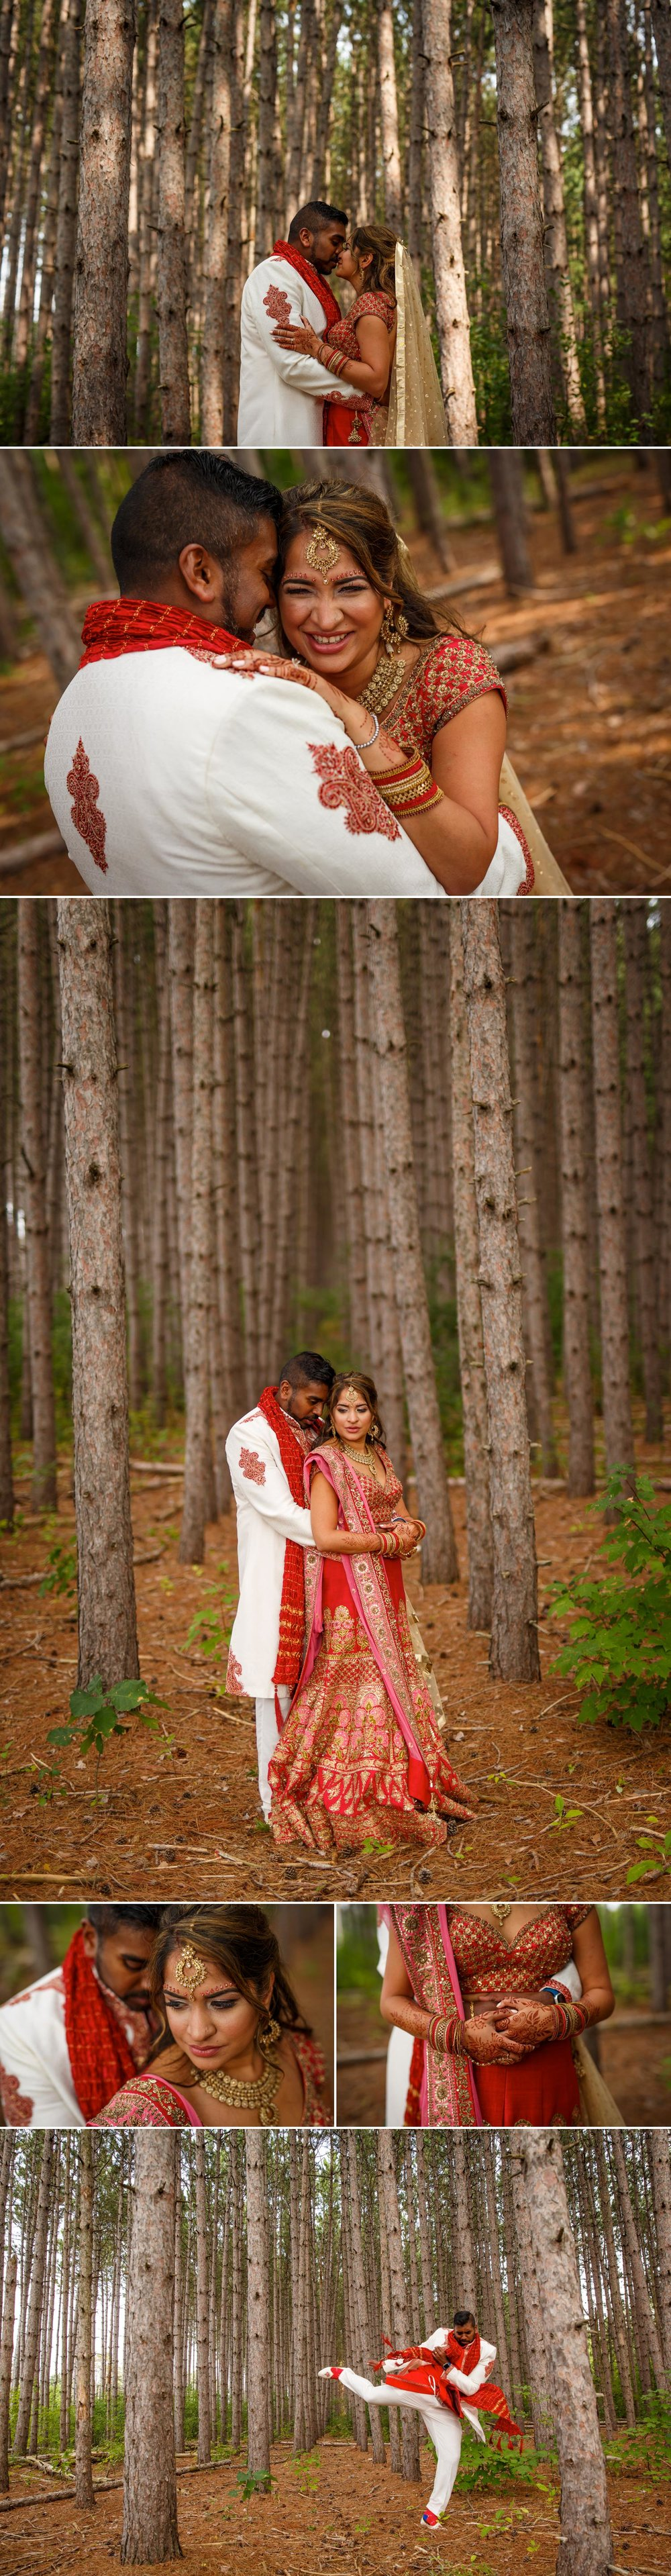 photos of an indian bride and groom